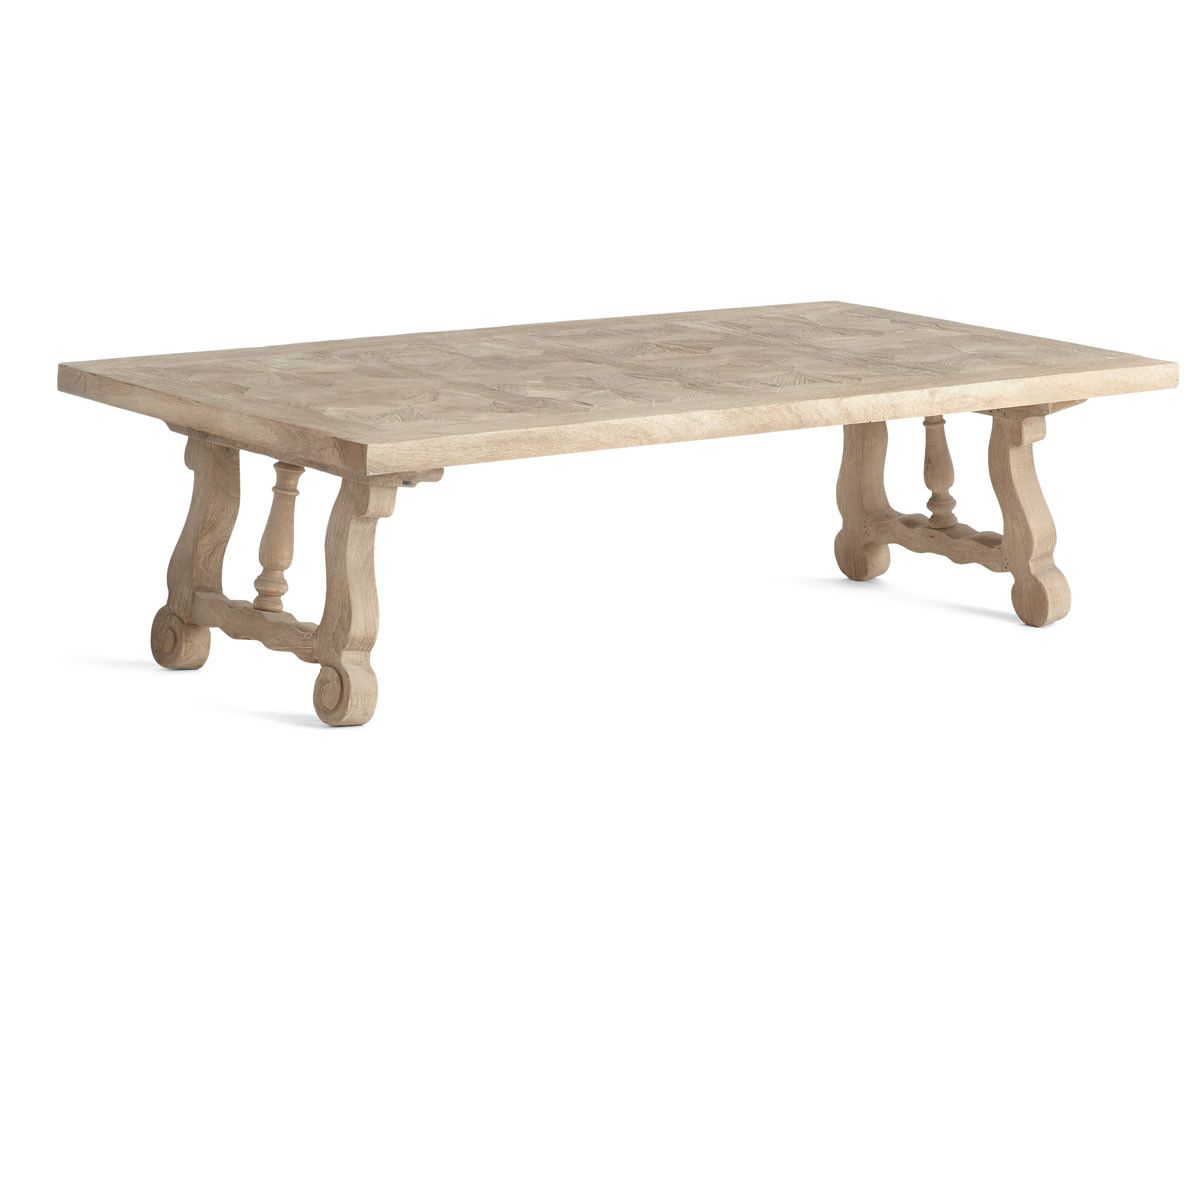 Parquet Coffee Table Living Room Coffee Tables Wisteria Modular Coffee Table Coffee Table Large Coffee Tables [ 1200 x 1200 Pixel ]